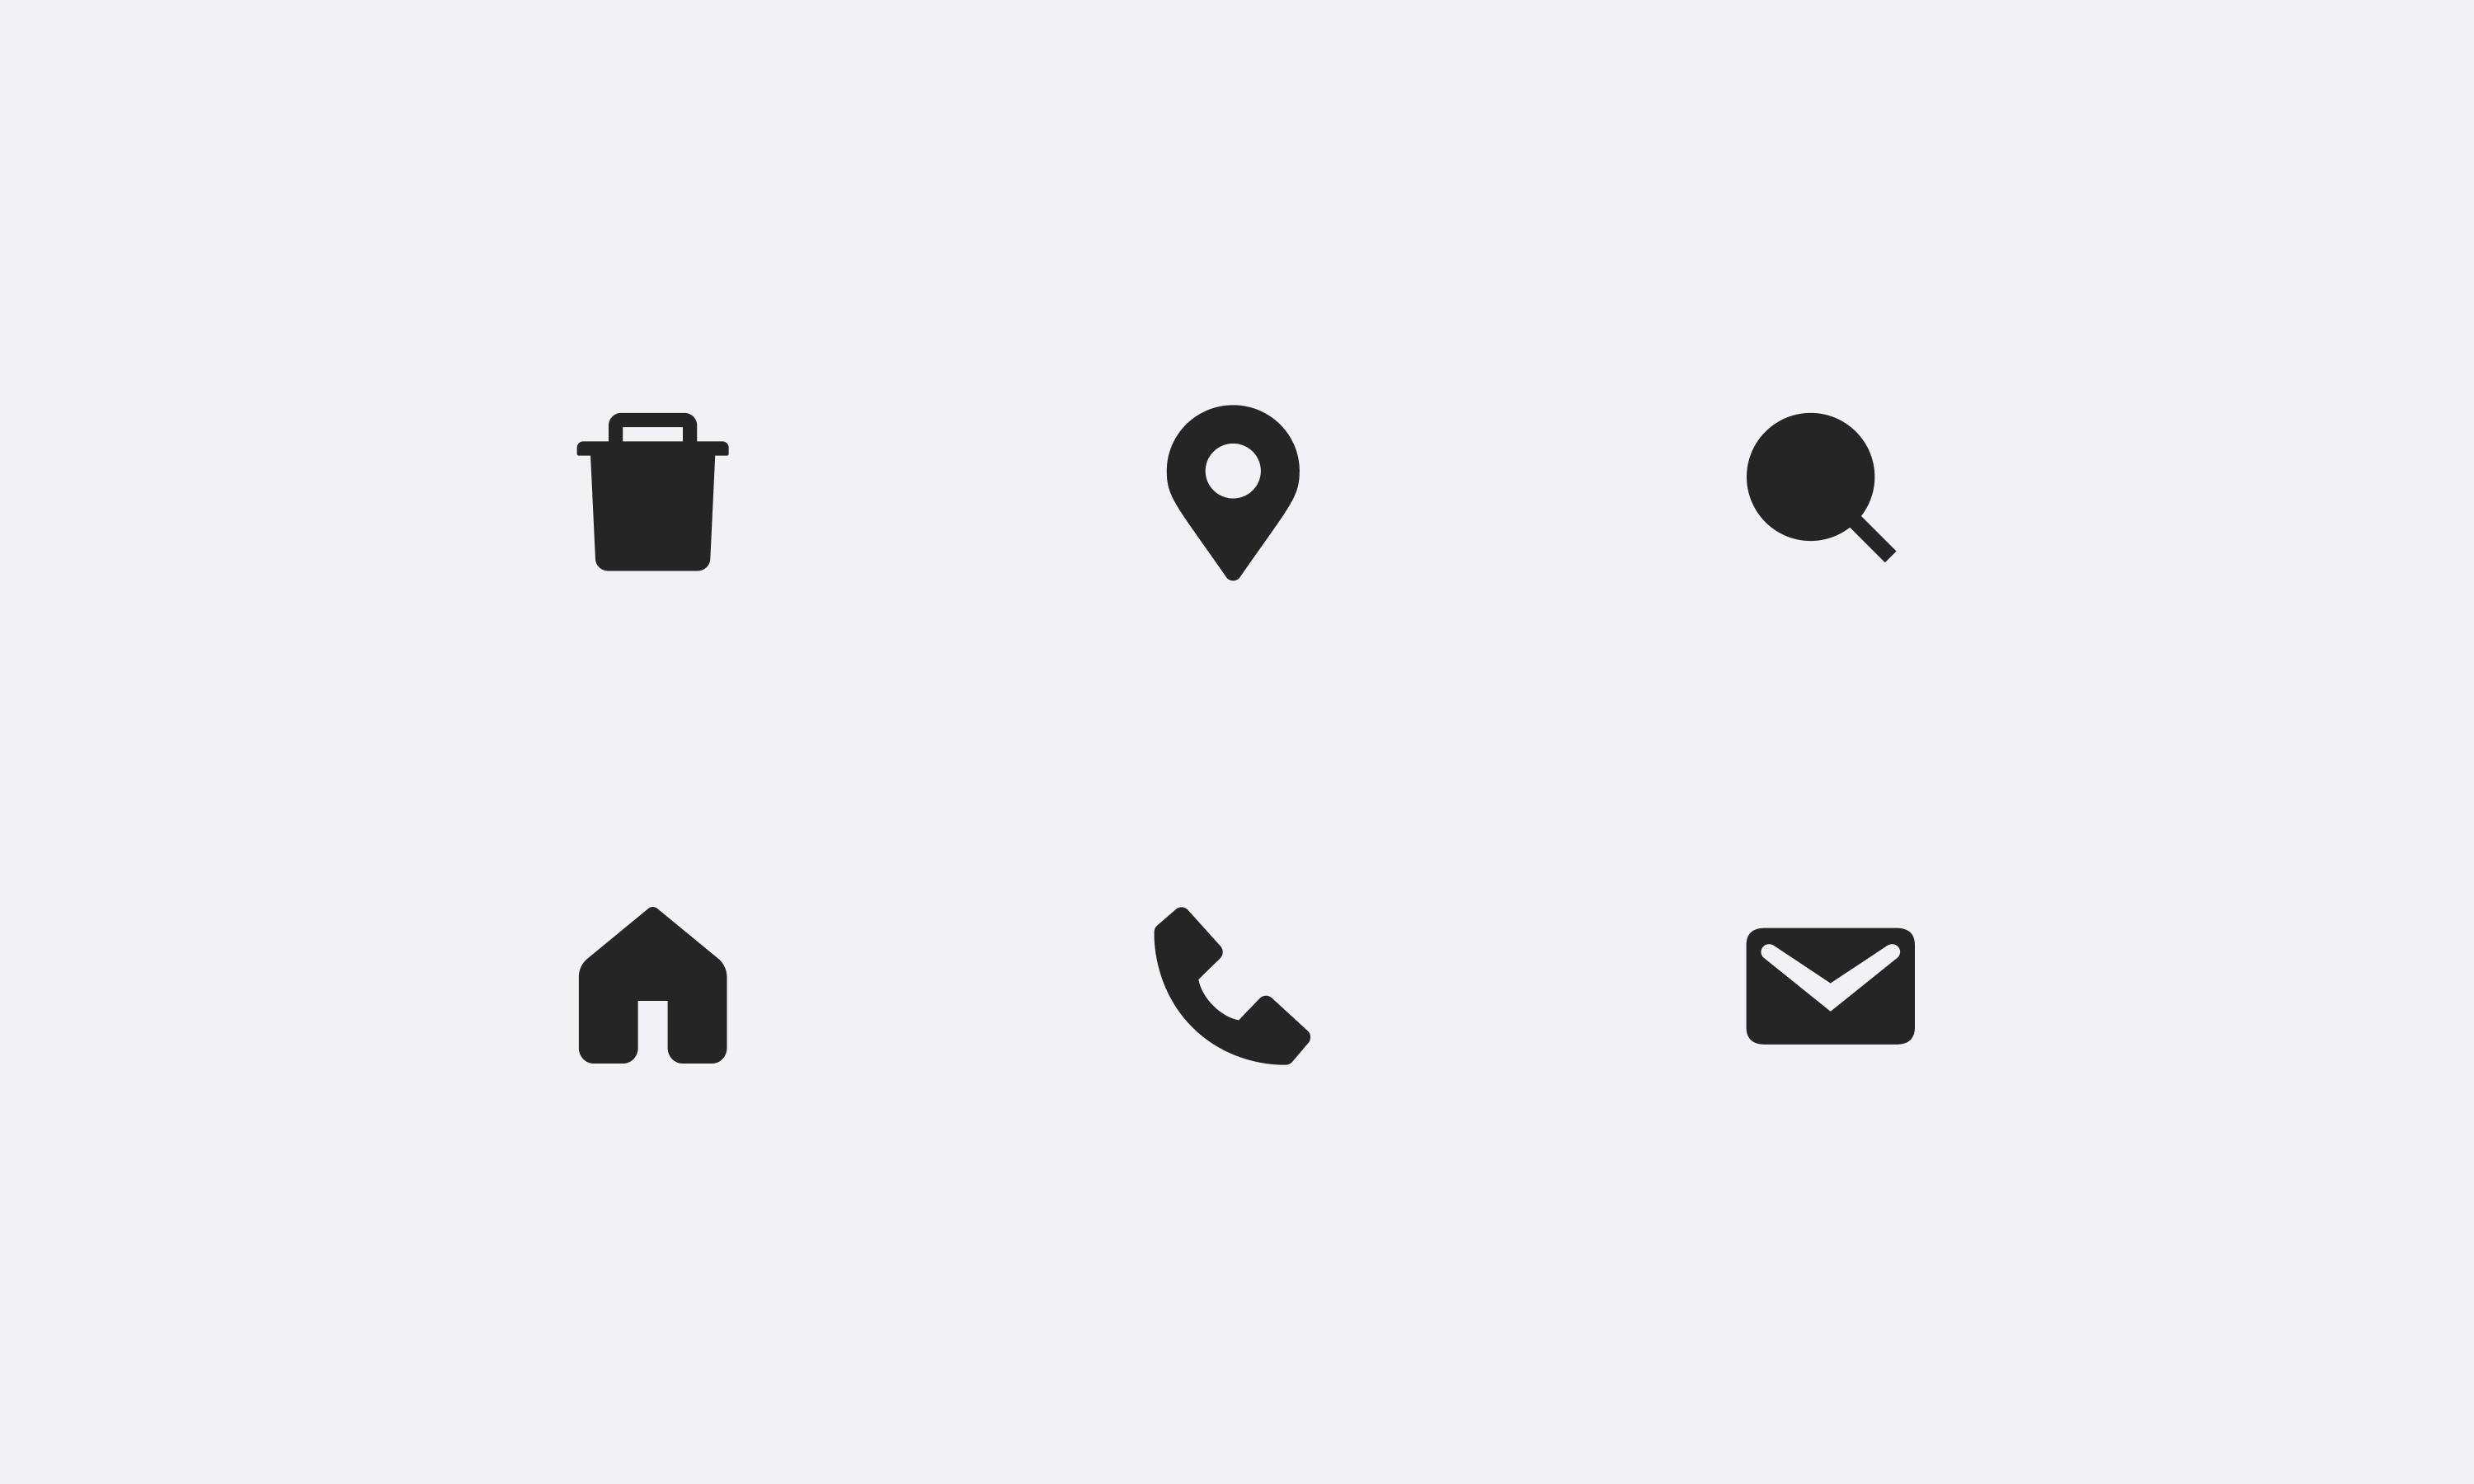 Display simple but common icons